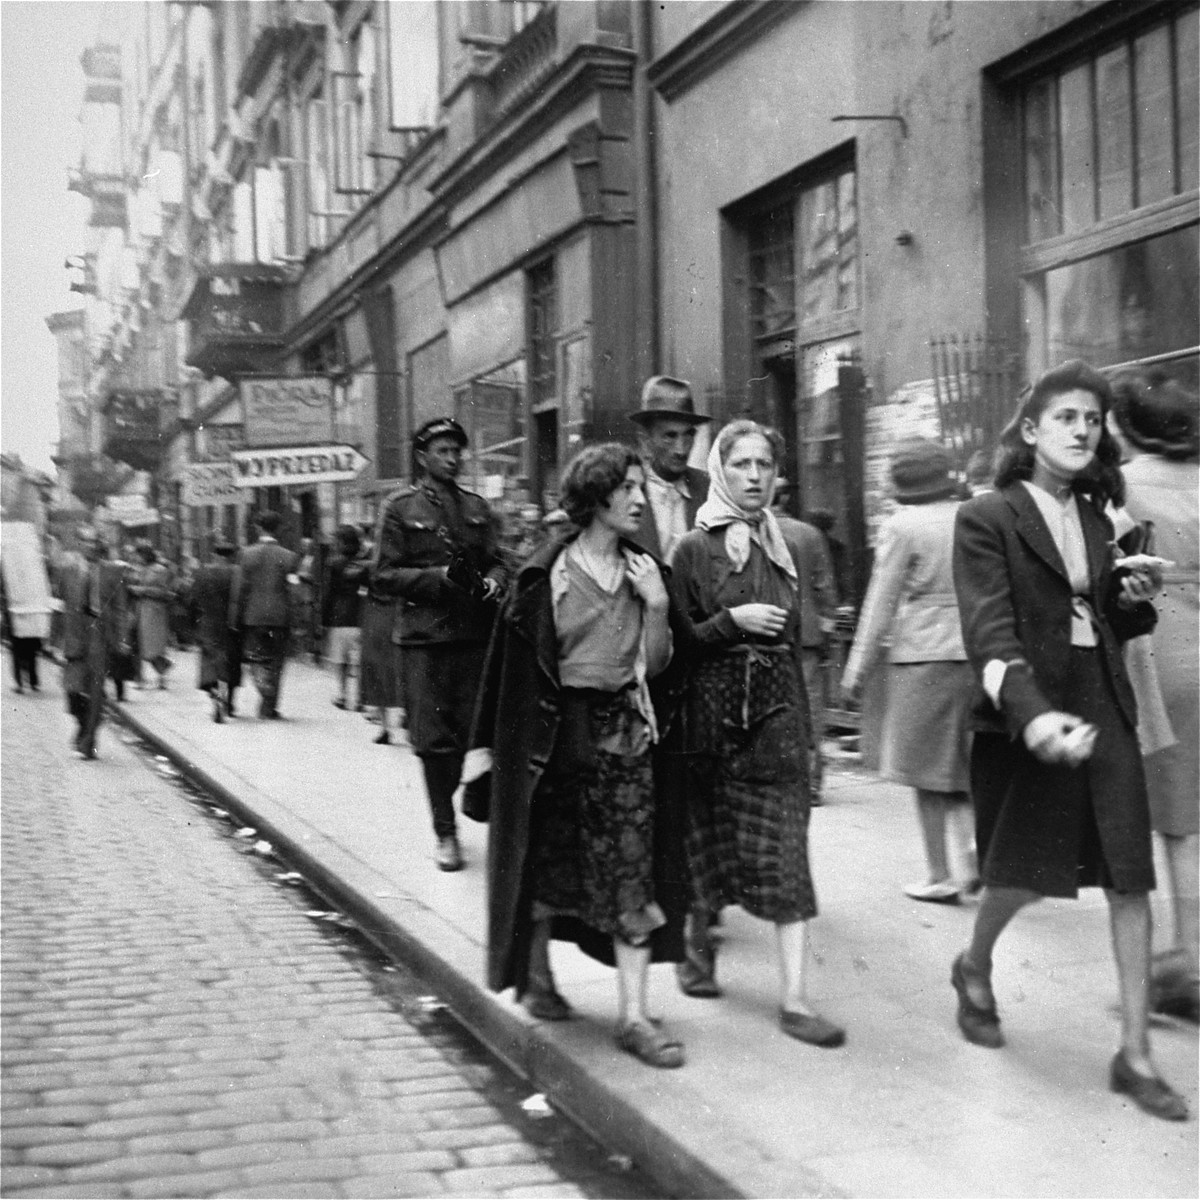 the warsaw ghetto its a resaerch paper The ghetto reached its highest number of inhabitants in april 1941 within its wall lived 395,000 varsovians (residents of warsaw) of jewish descent, 50,000 of people resettled from the western part of the warsaw district, 3,000 from its eastern part as well as 4,000 jews from germany (all resettled.